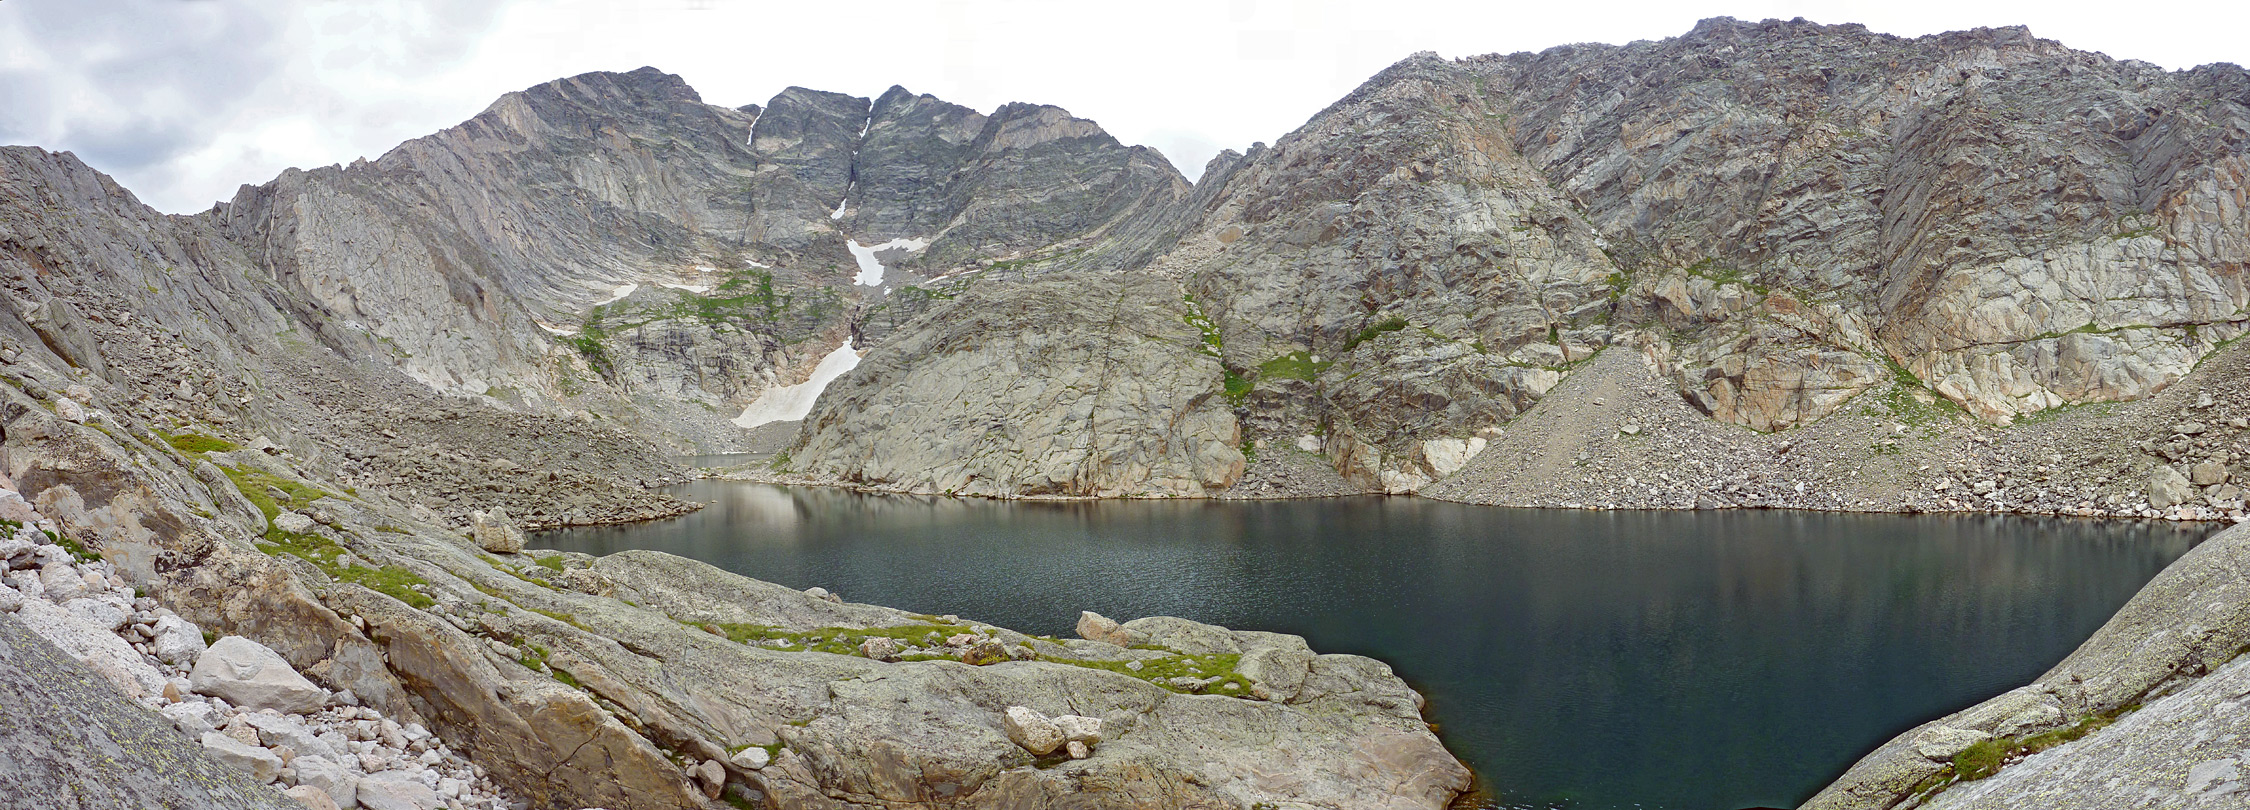 Panorama of the Spectacle Lakes